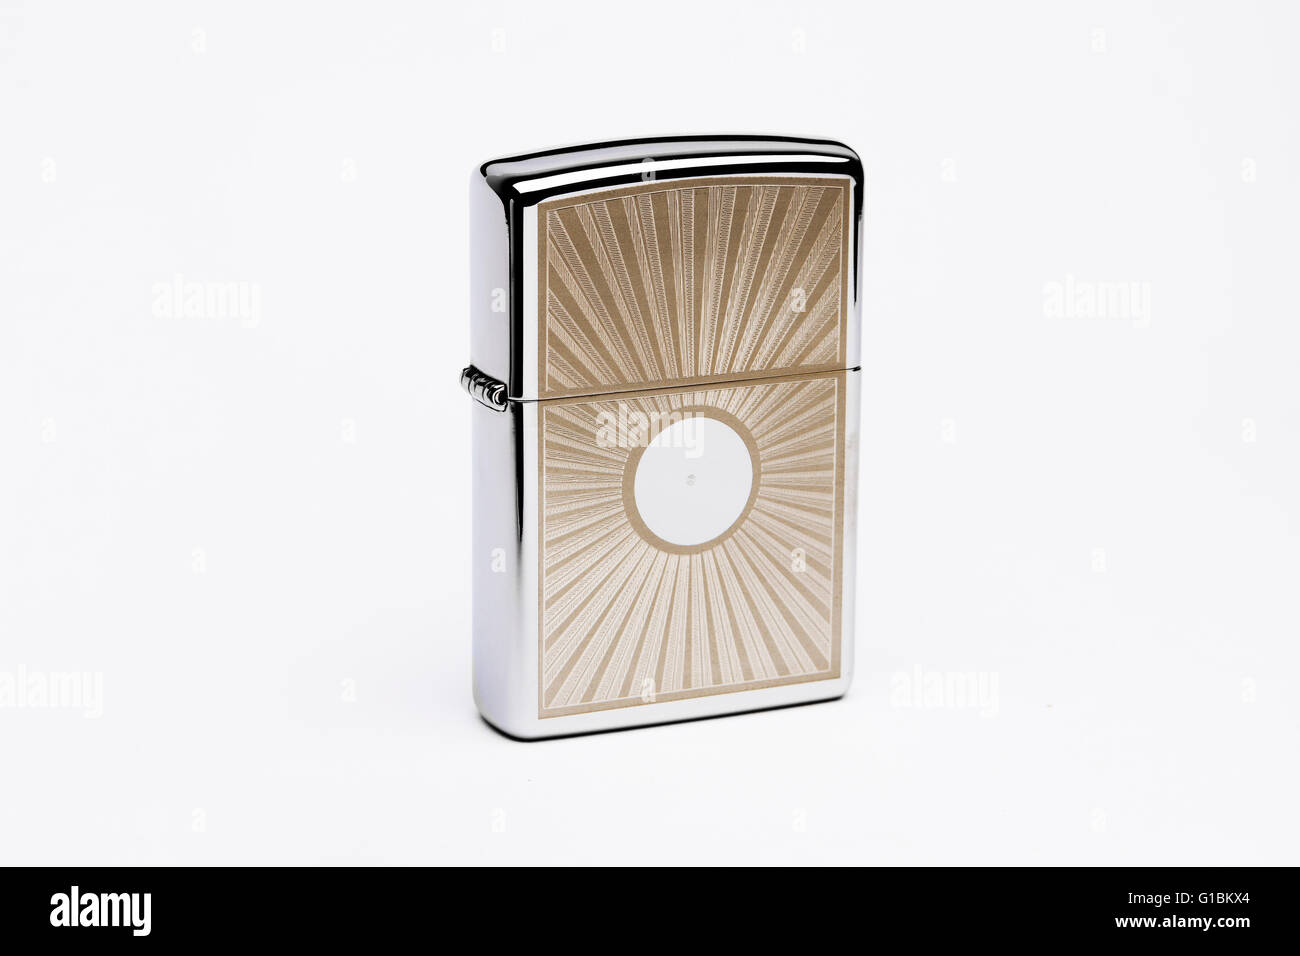 Normal zippo lighter image  taken from brazil in studio - Stock Image